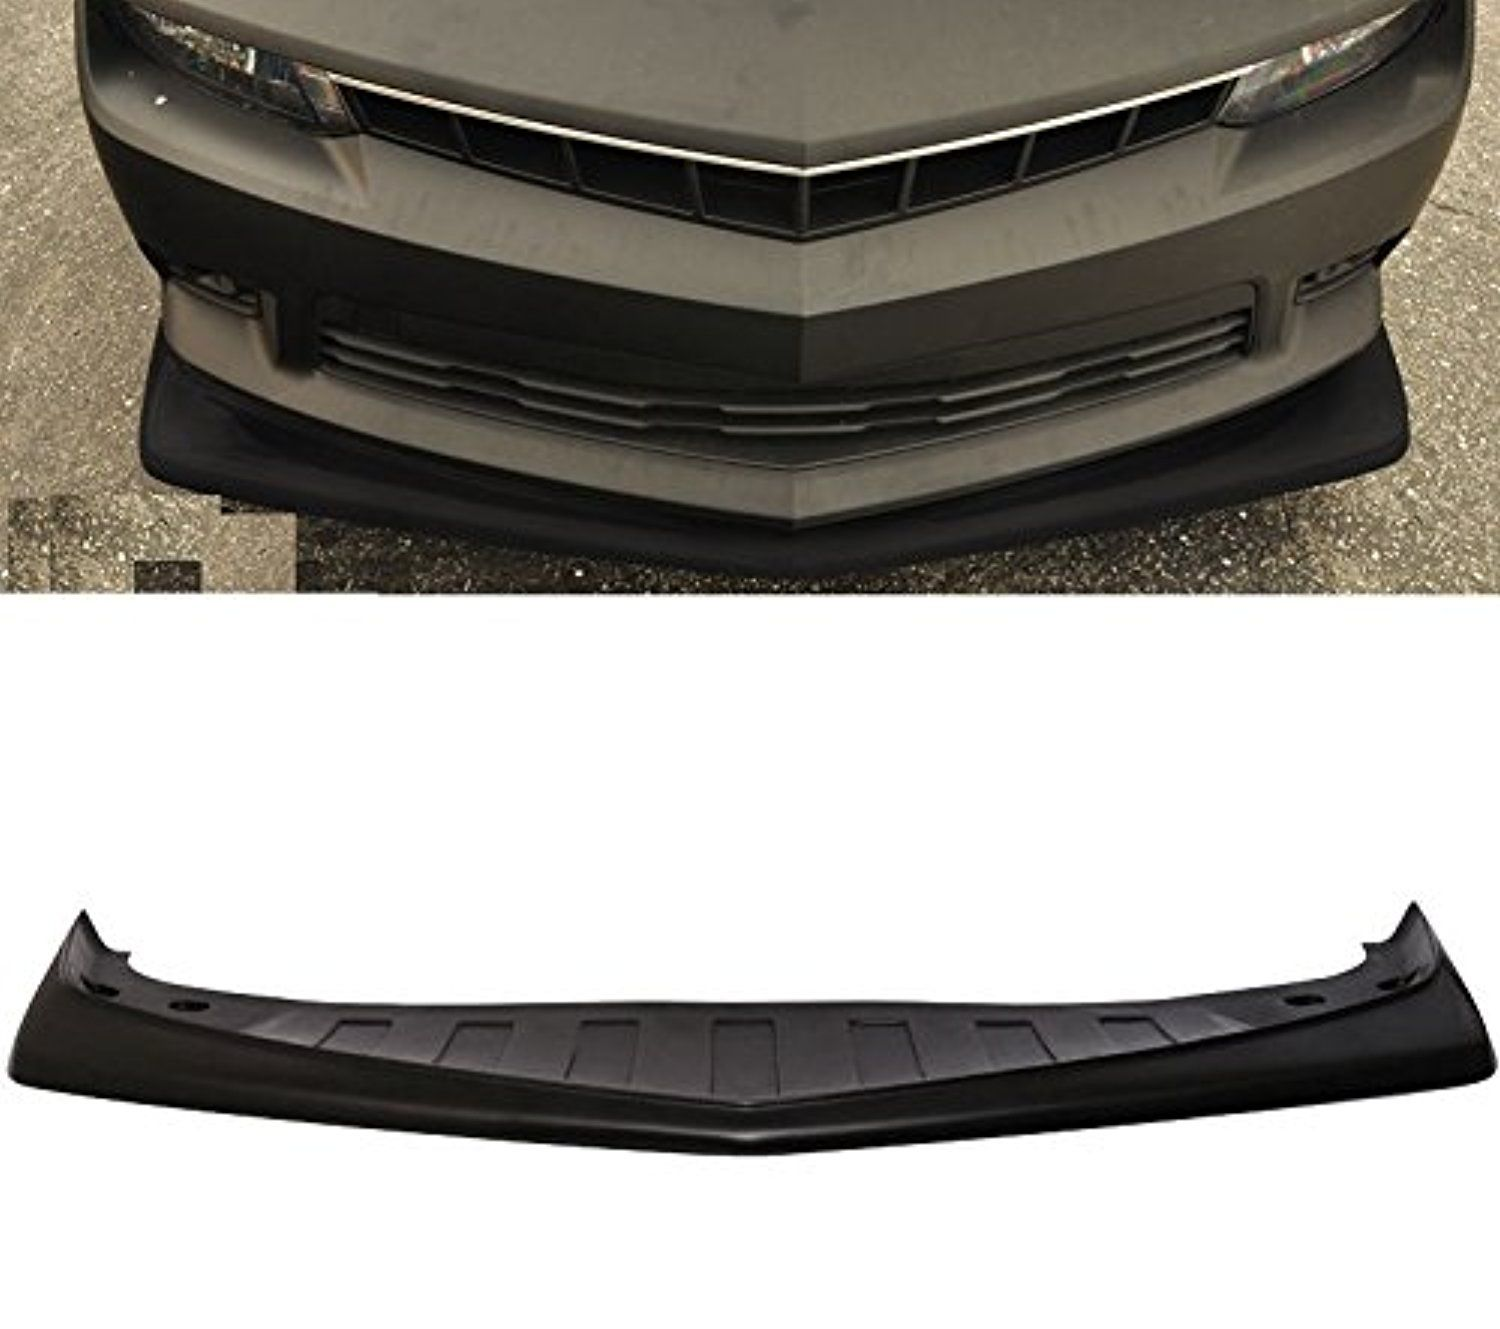 Cpw Tm 14 15 Chevy Camaro Z28 Style Front Bumper Lip Spoiler New Awesome Products Selected By Anna Churchill Chevy Camaro Z28 Chevy Camaro Camaro